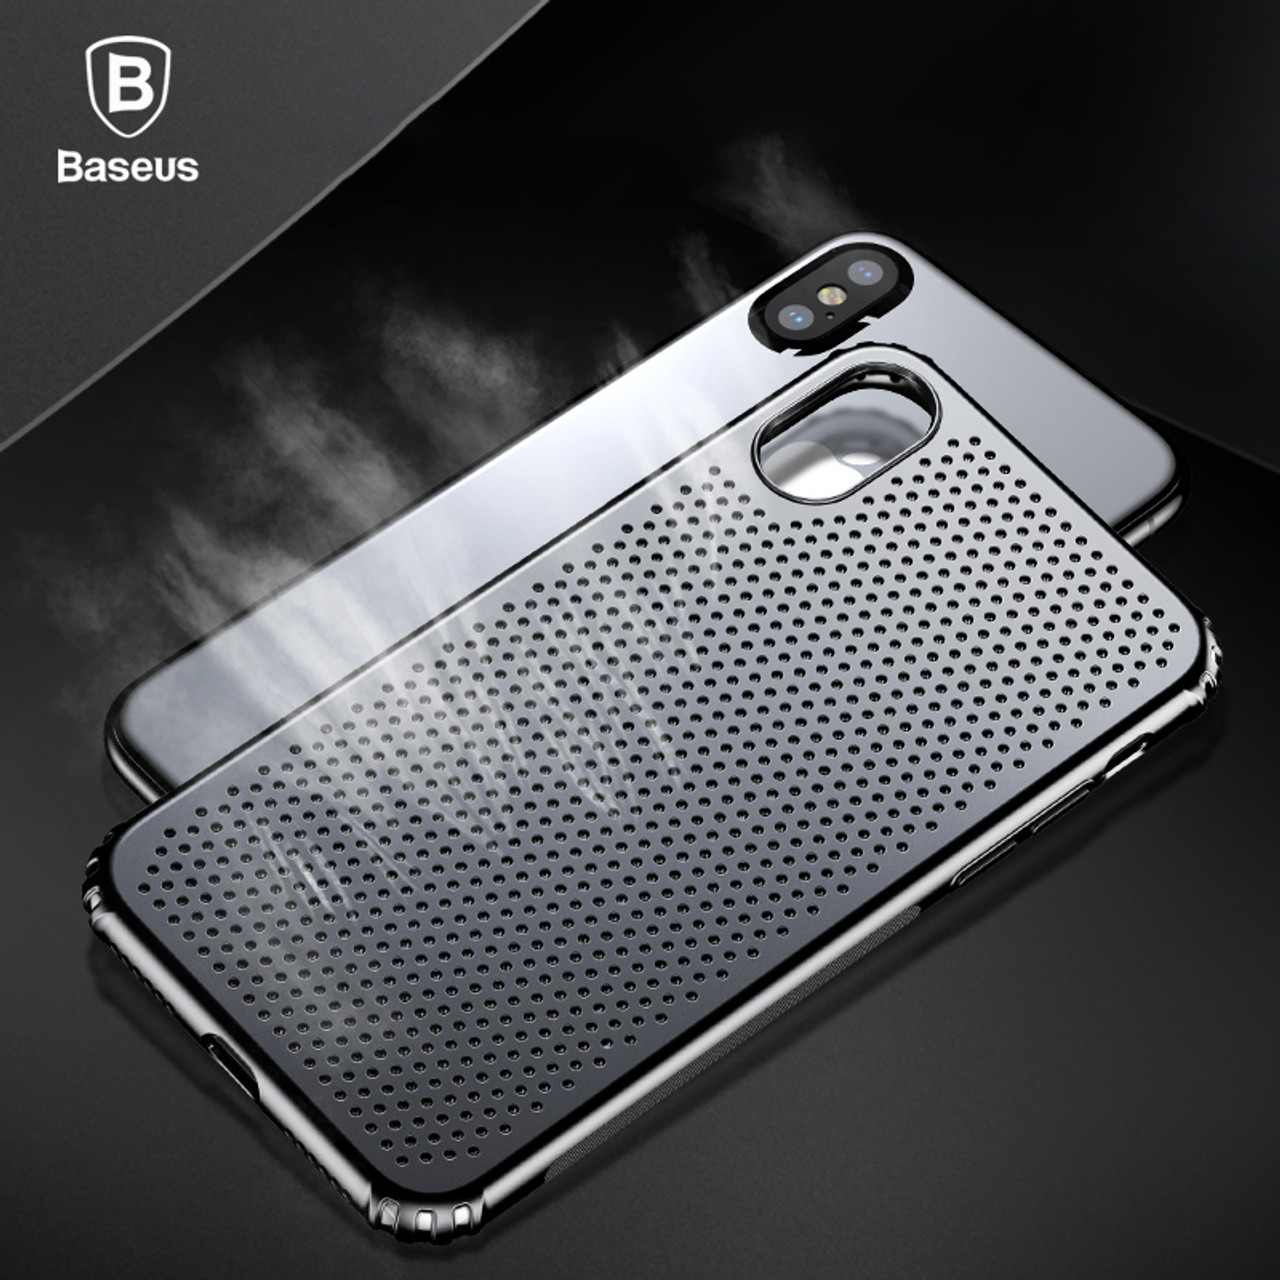 newest eb60d c8ed6 Baseus Creative Hollow Case For iPhone X Luxury Smooth Hard Plastic Case  For iPhone X Cases Anti Knock Phone Cover